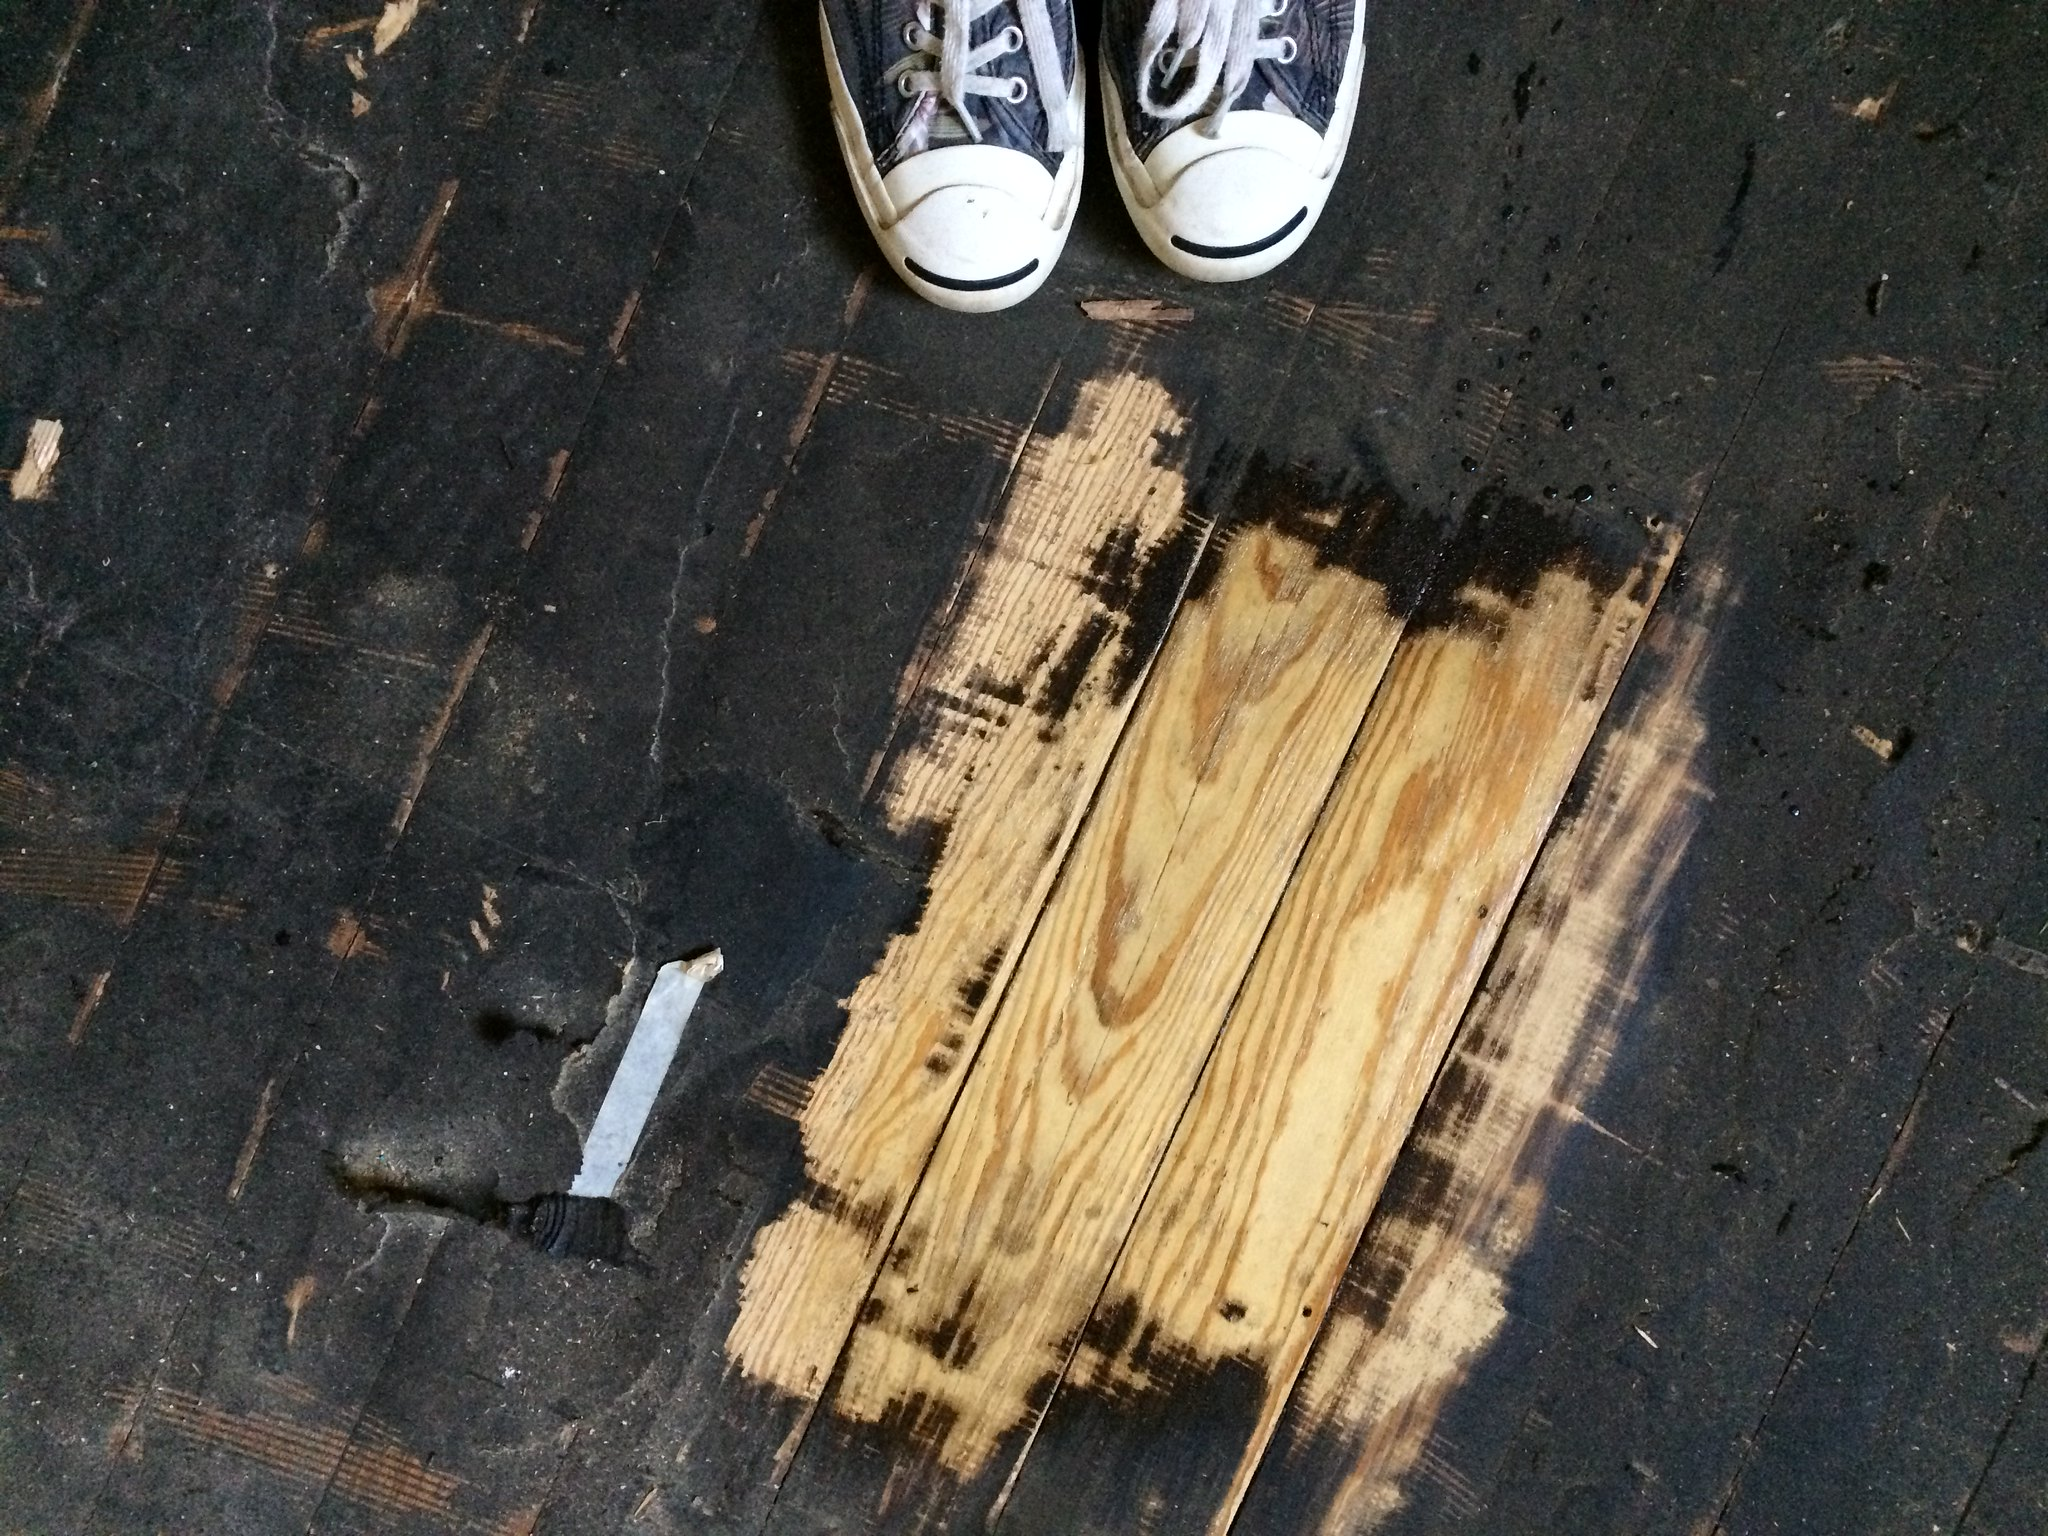 Thicker baseboards and how to remove tar paper - The